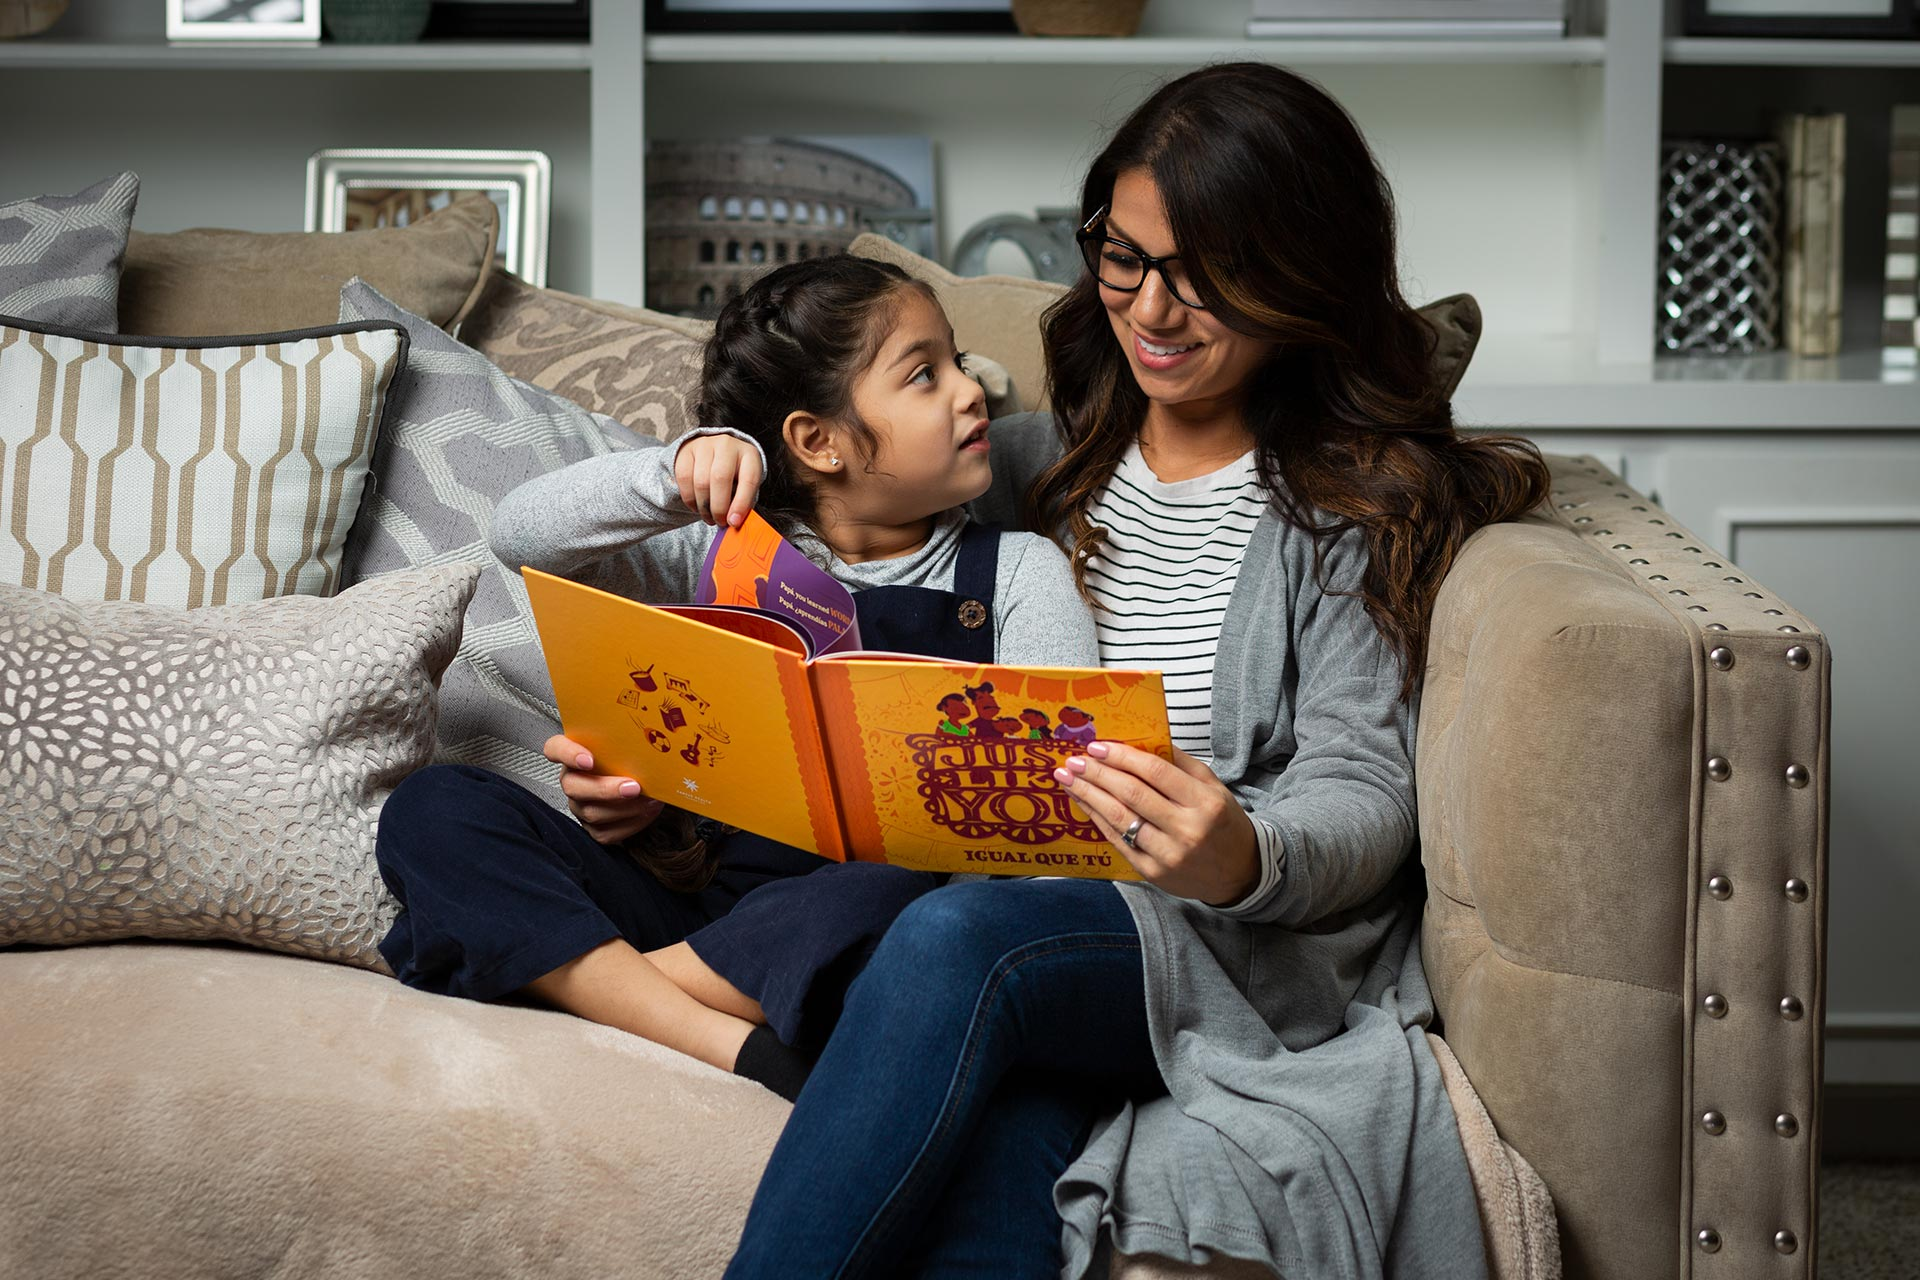 Mother and daughter reading Just Like You book on a couch